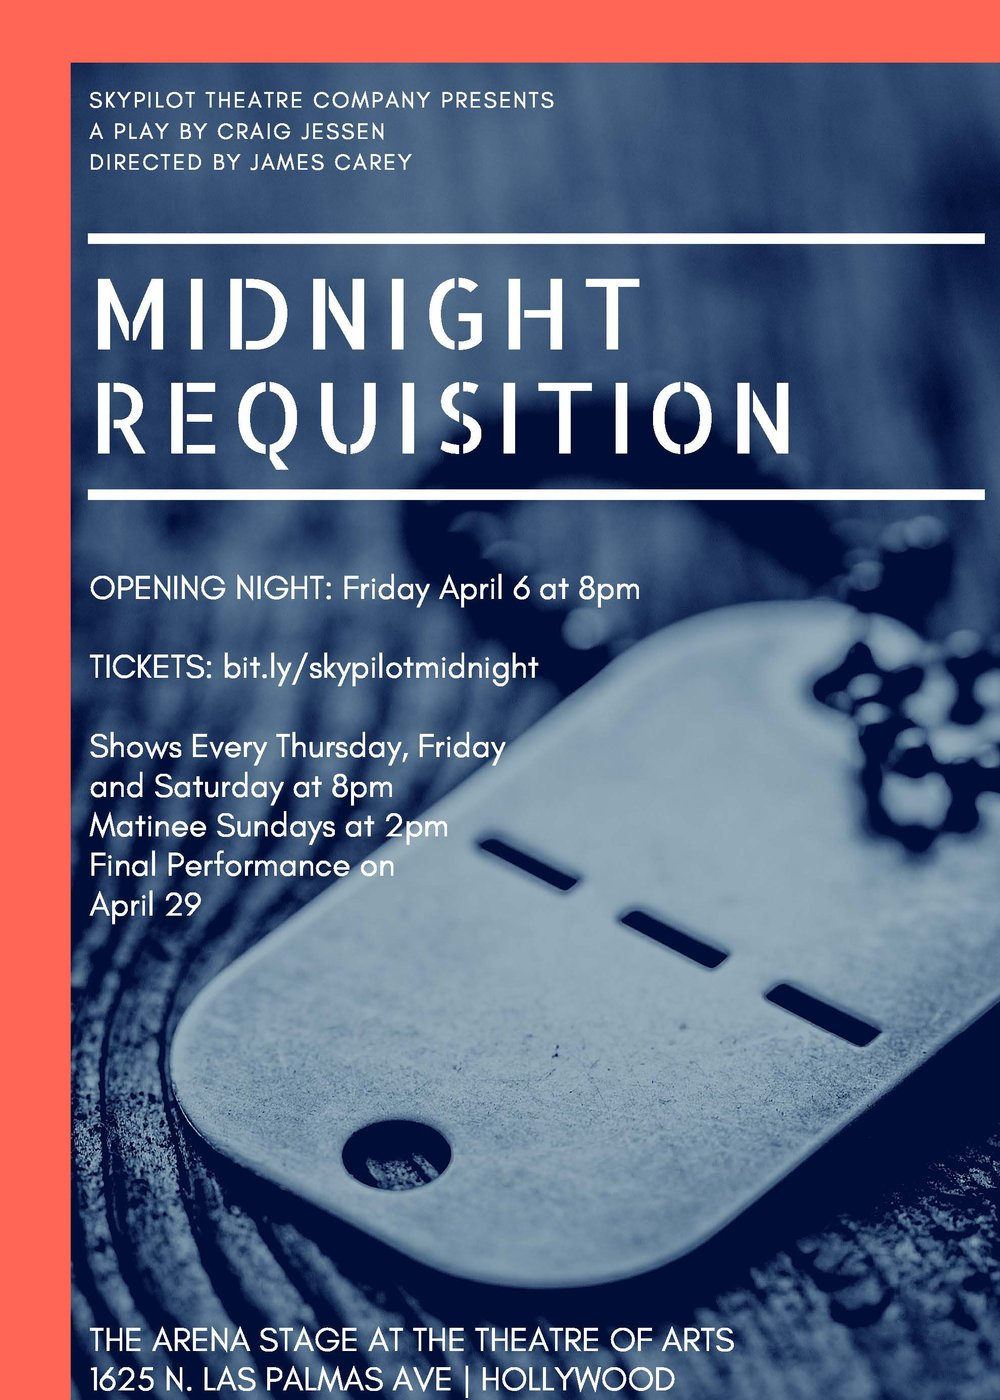 Midnight_Requisition_Flyer_V8.jpg